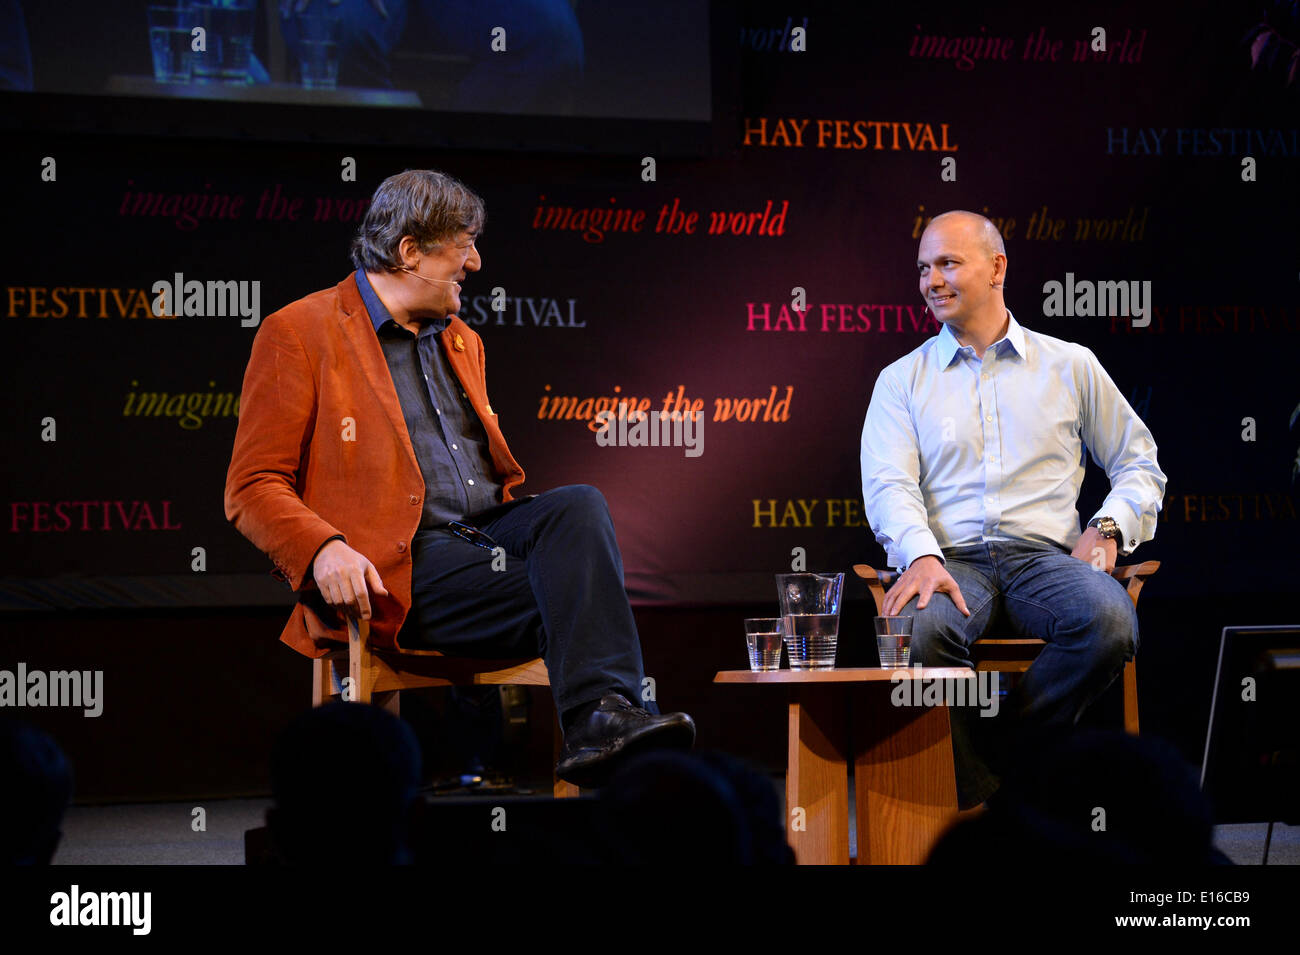 Hay on Wye, Wales UK, Saturday 24 May 2014 STEPHEN FRY in conversation with TONY FADELL, the inventor of te iPod, Stock Photo